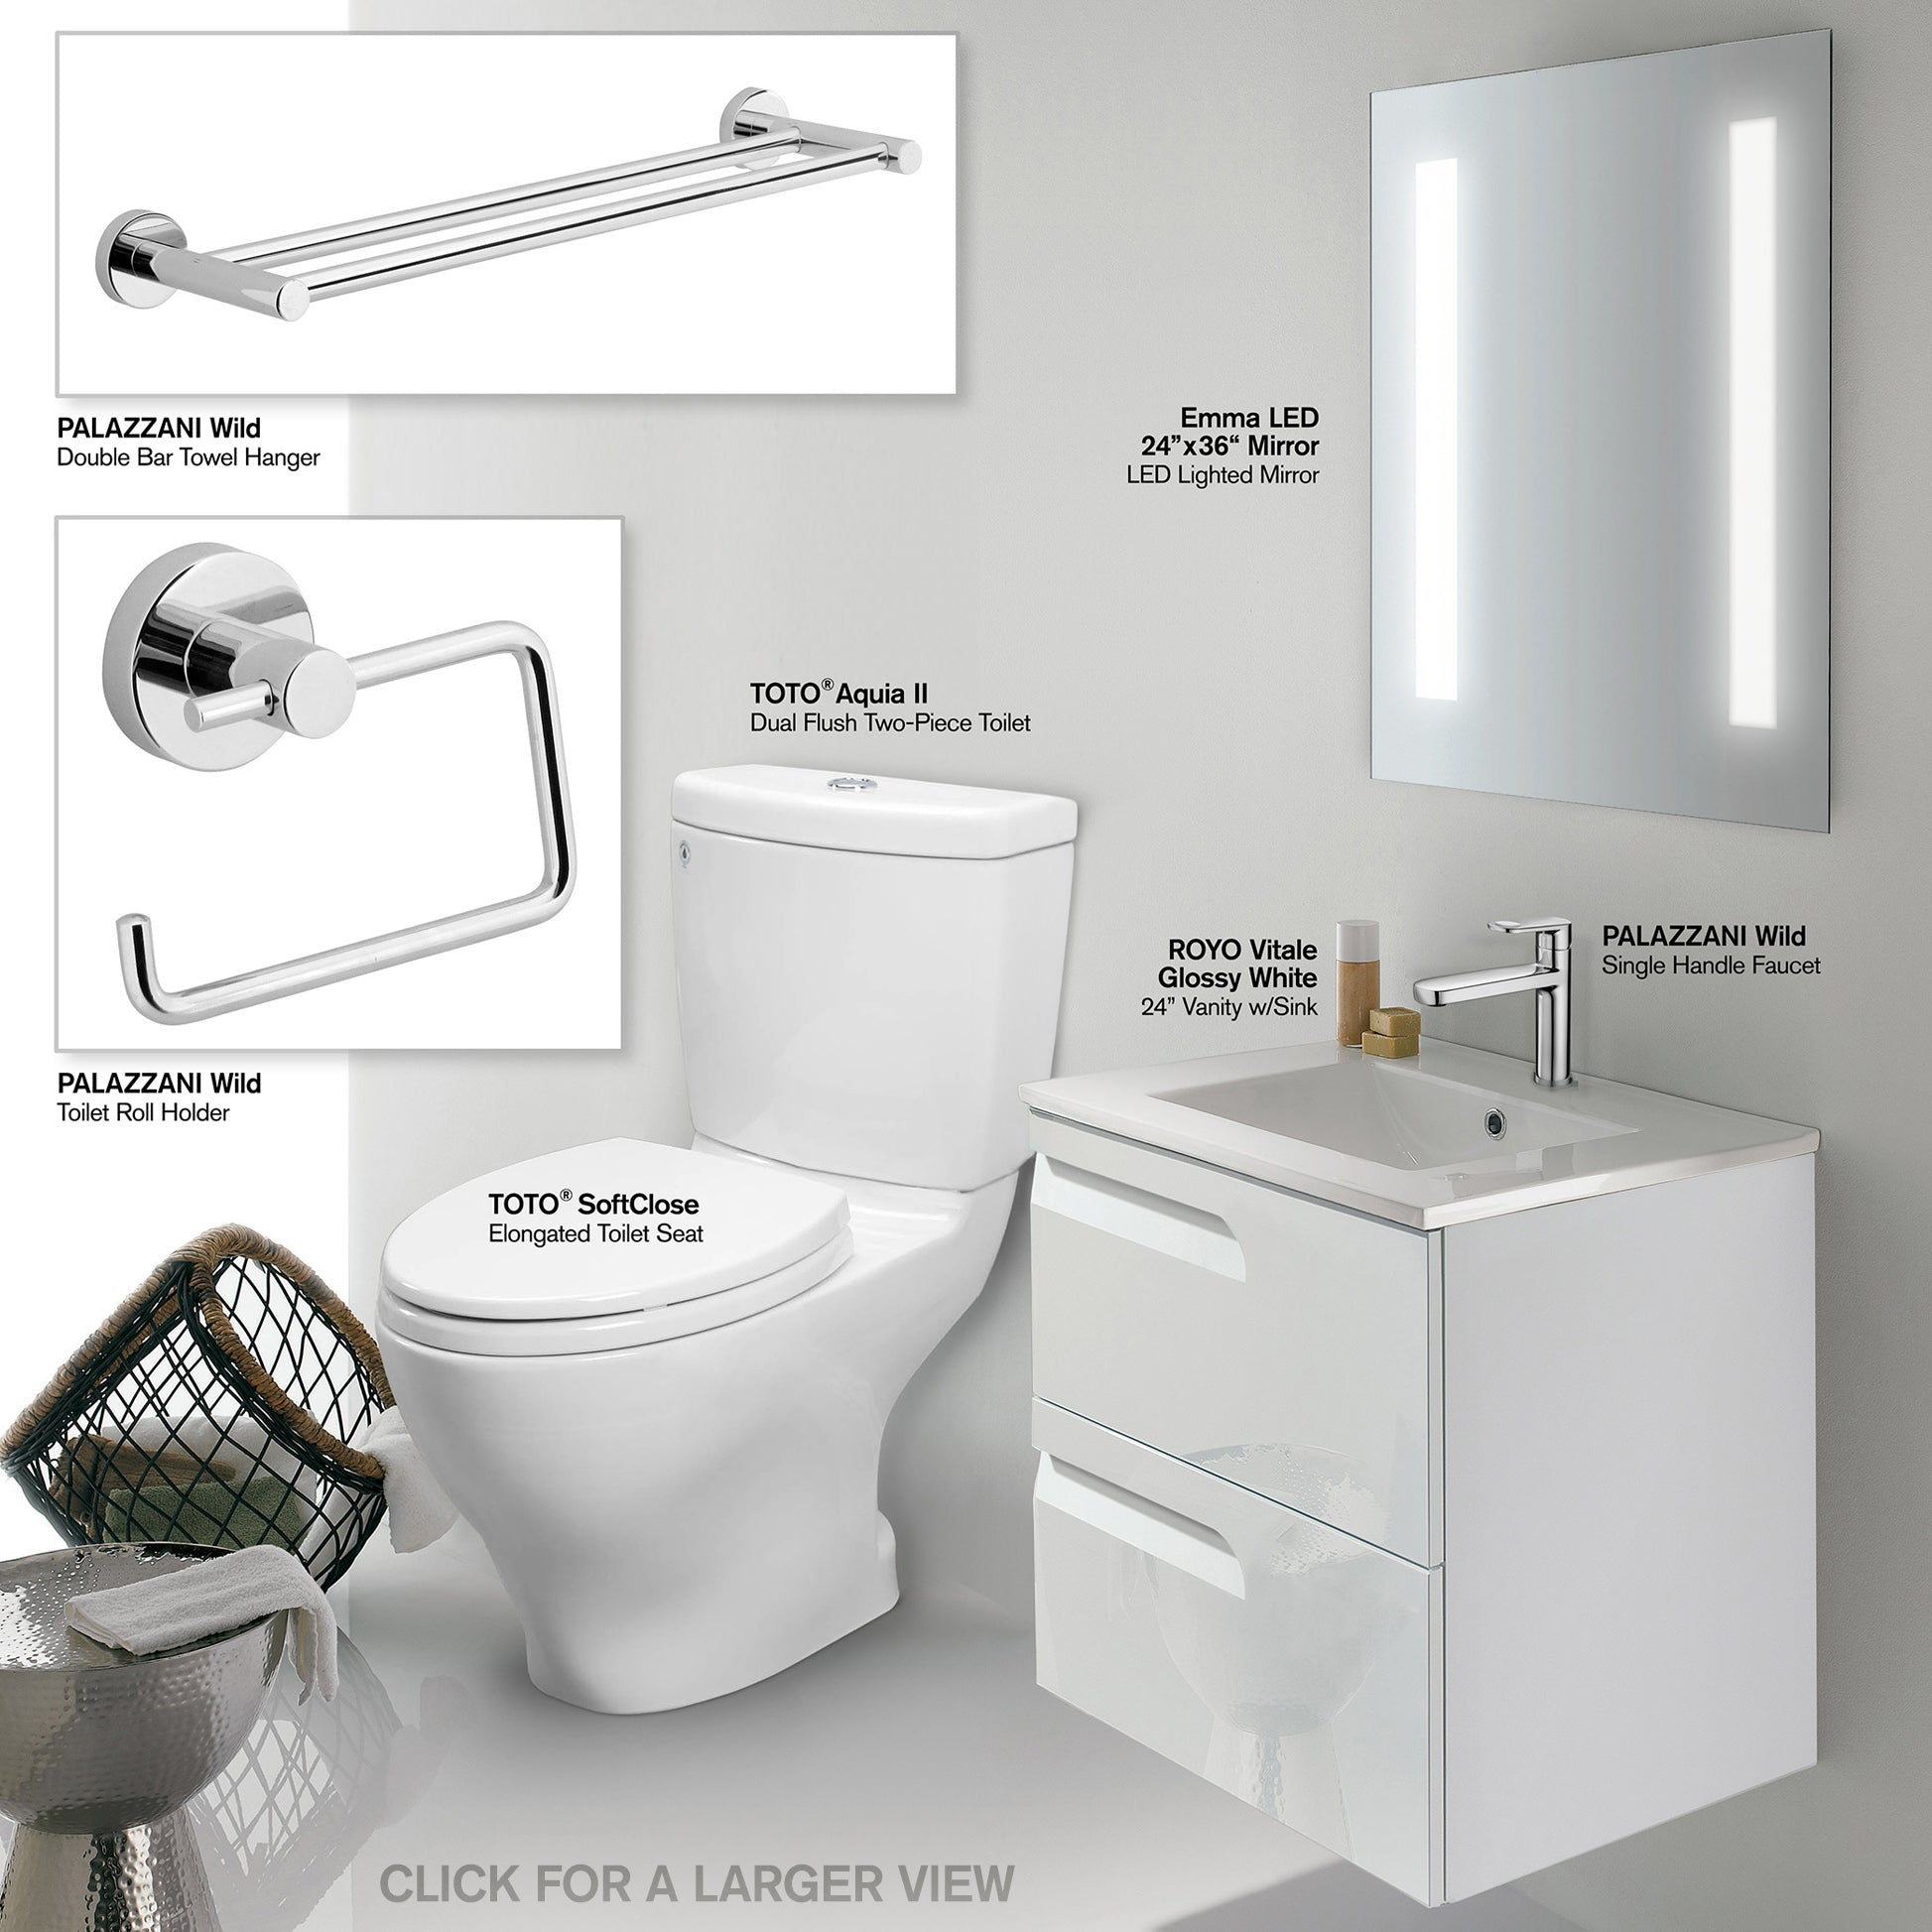 Mega Supply Store - Deals on Bathroom Fixtures and Kitchen Appliances